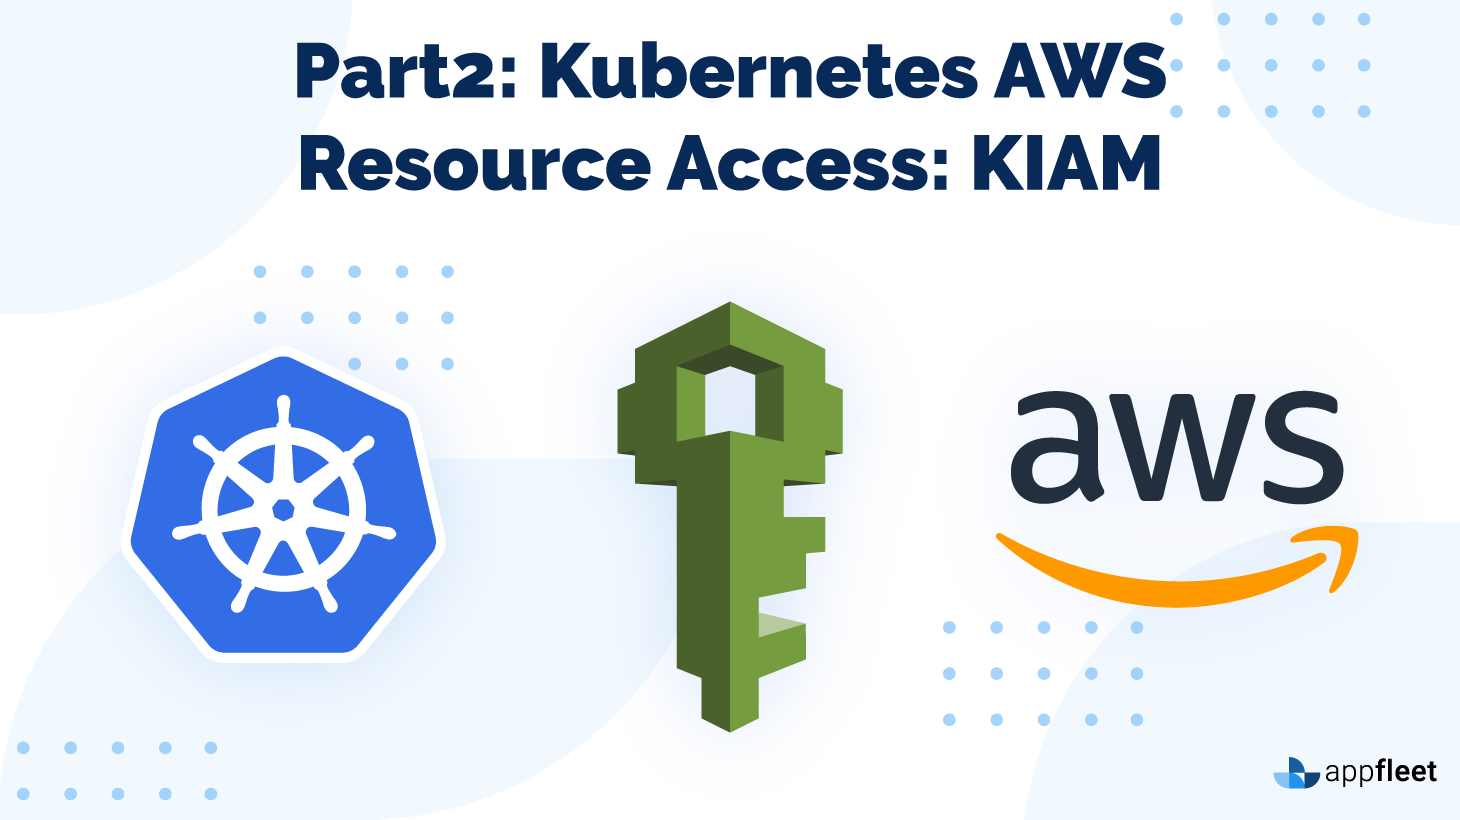 Part2: Kubernetes AWS Resource Access: KIAM